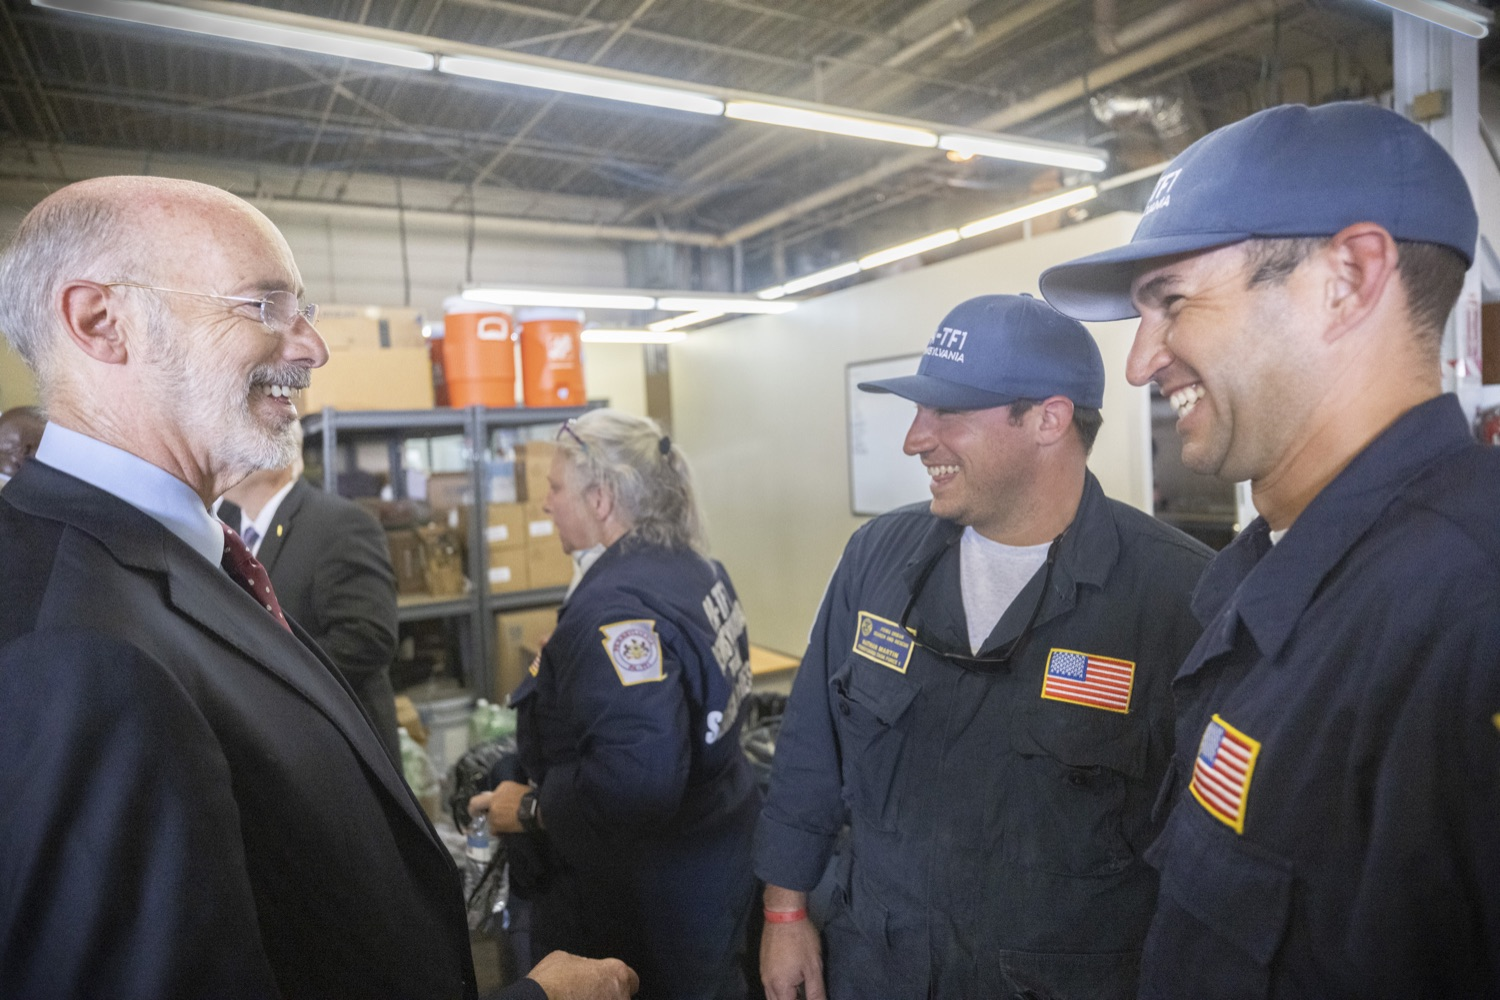 """<a href=""""https://filesource.wostreaming.net/commonwealthofpa/photo/18936_gov_taskforceone_dz_019.jpg"""" target=""""_blank"""">⇣Download Photo<br></a>Governor Tom Wolf speaking to returning Pennsylvania-Task Force 1. Members.Governor Tom Wolf thanked members of Pennsylvania-Task Force 1 (PA- TF1), who returned today to Philadelphia after spending two weeks assisting with search and rescue efforts at the site of the recent deadly building collapse in Surfside, Florida.  Philadelphia, Pa.  July 16, 2021"""